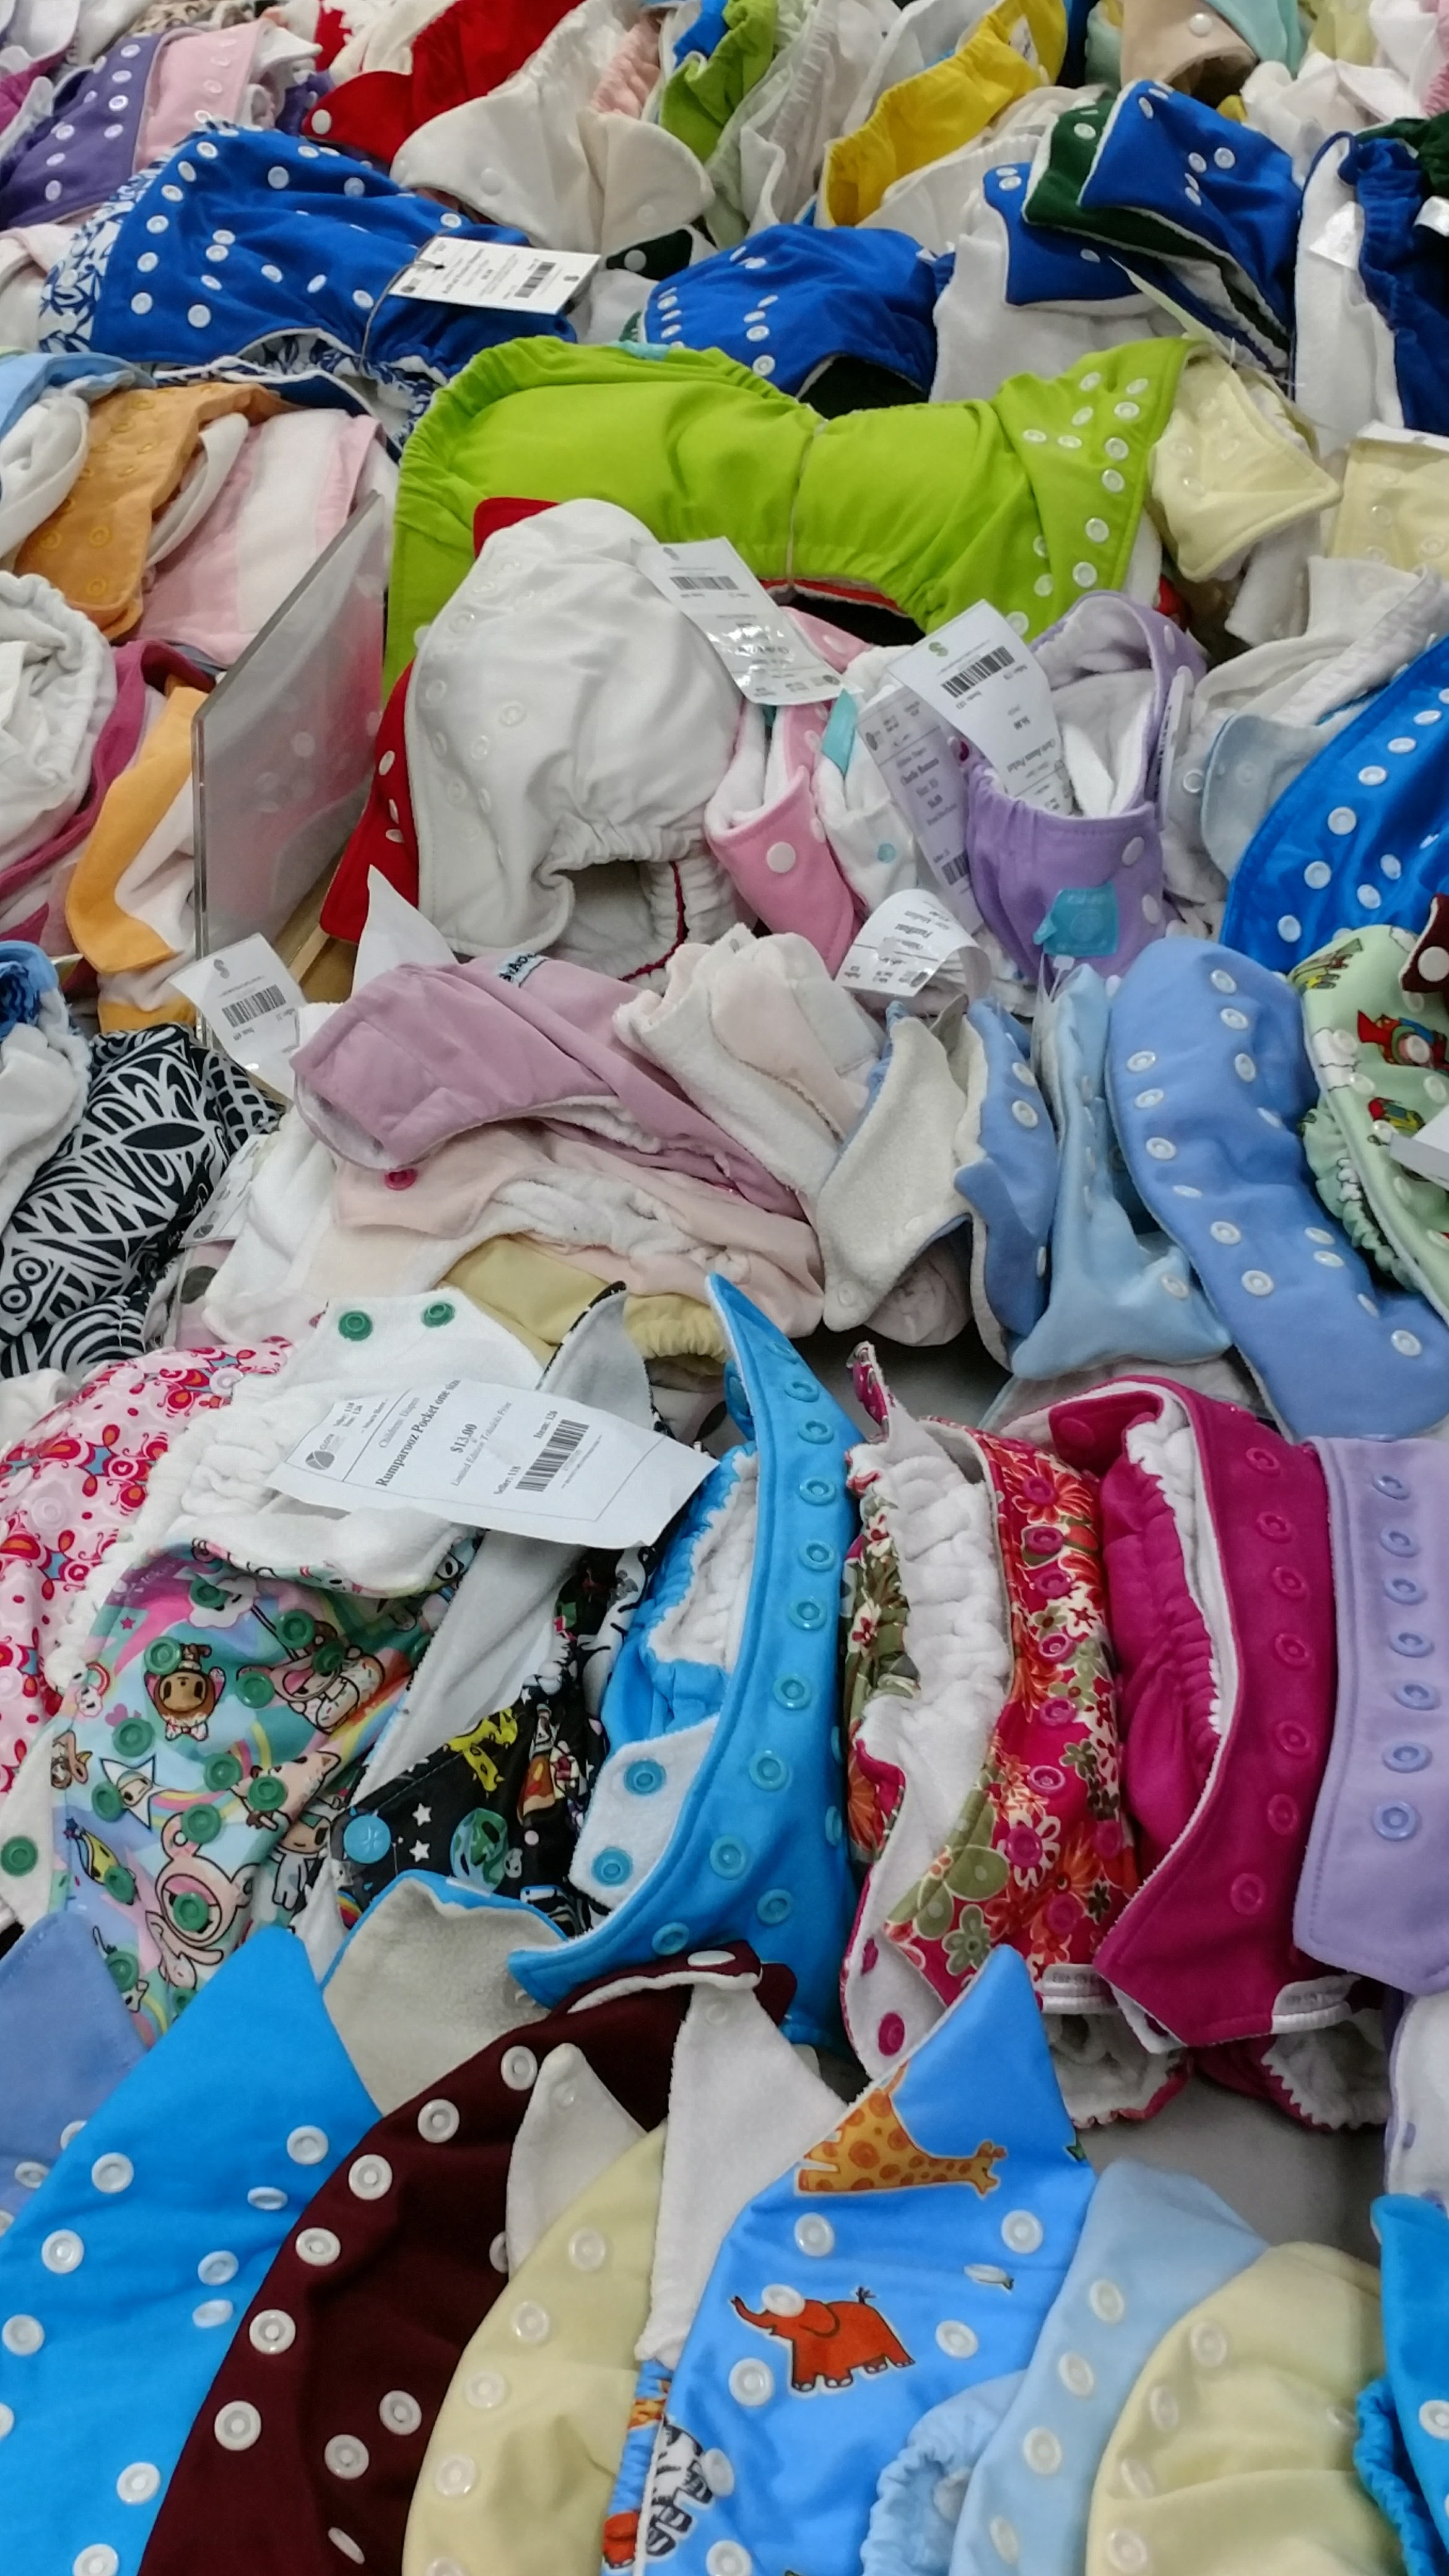 dafaf8d4442 Spring Sprout Swap Cloth Diaper and Baby Carrier Consignment Sale